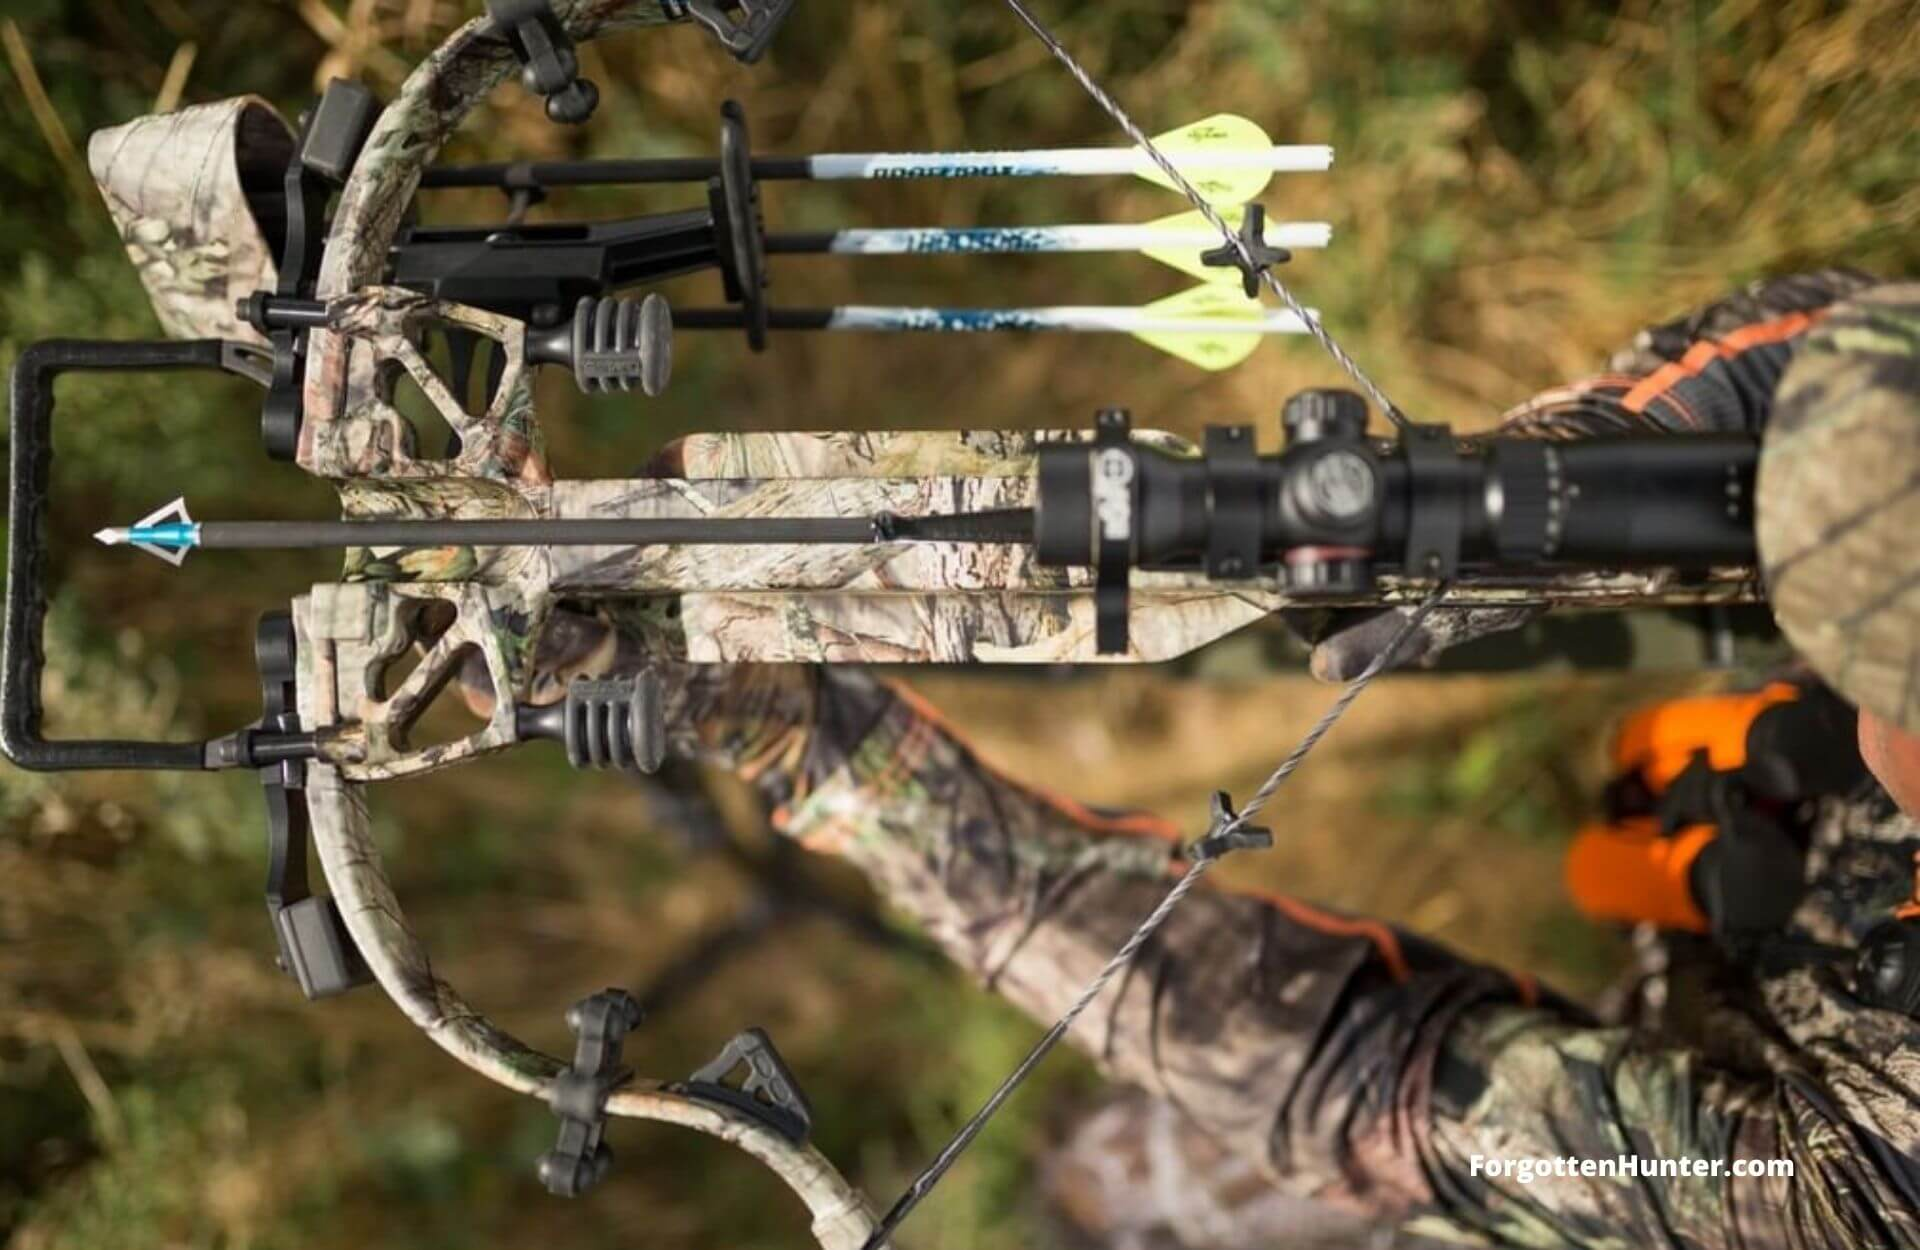 Excalibur Suppressor 400TD Review - Silent, Stealth Crossbow